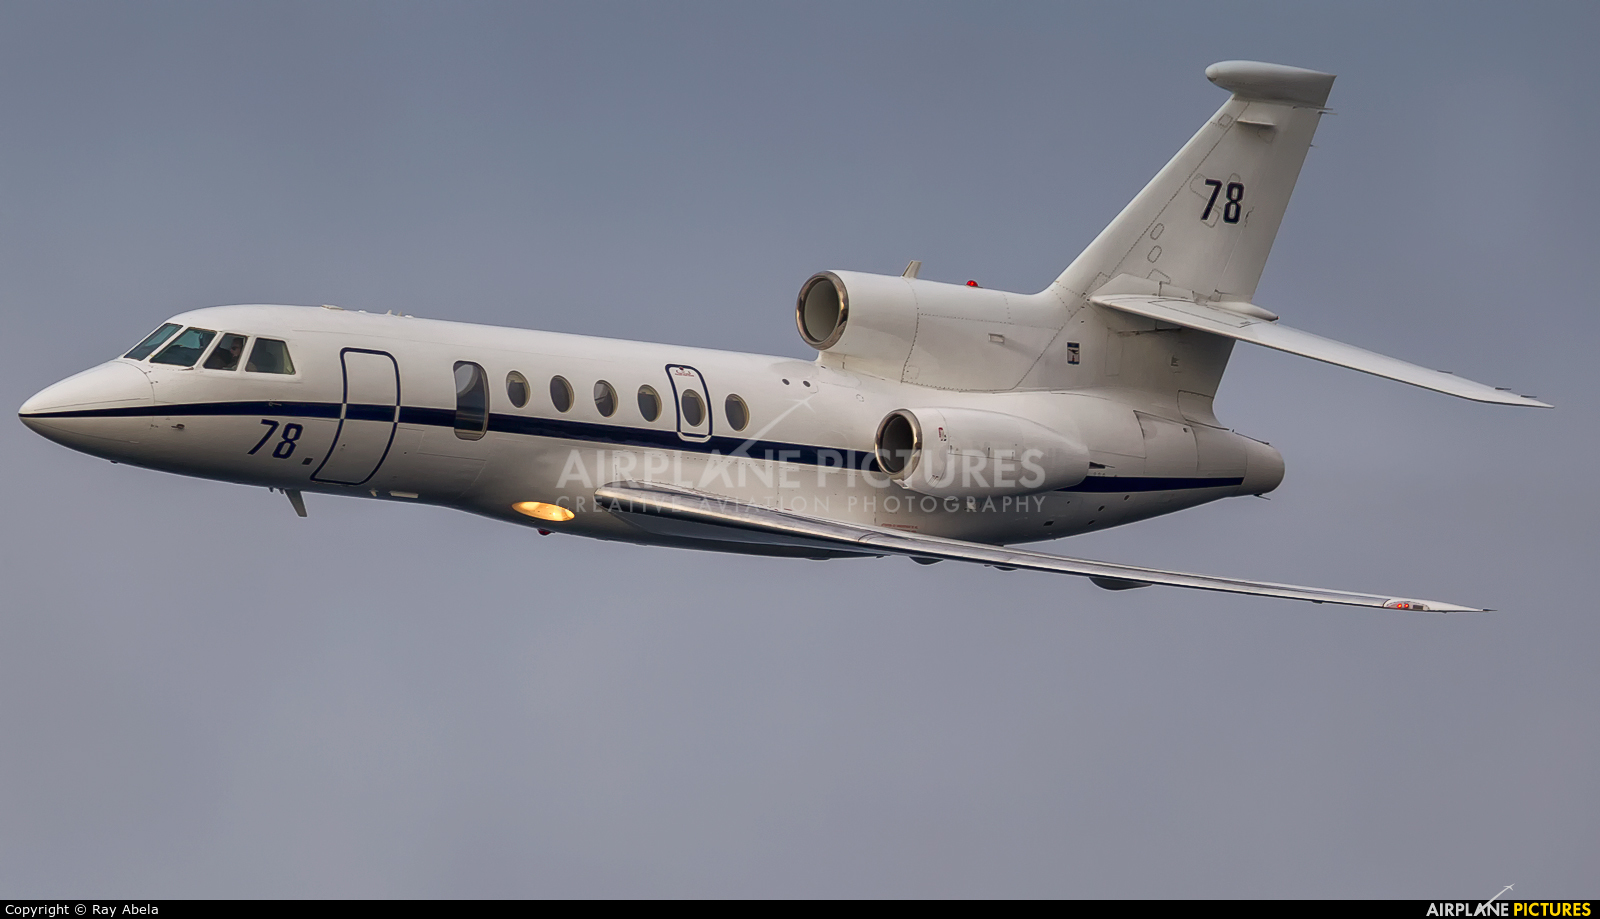 78 france air force dassault falcon 50 marine at off airport